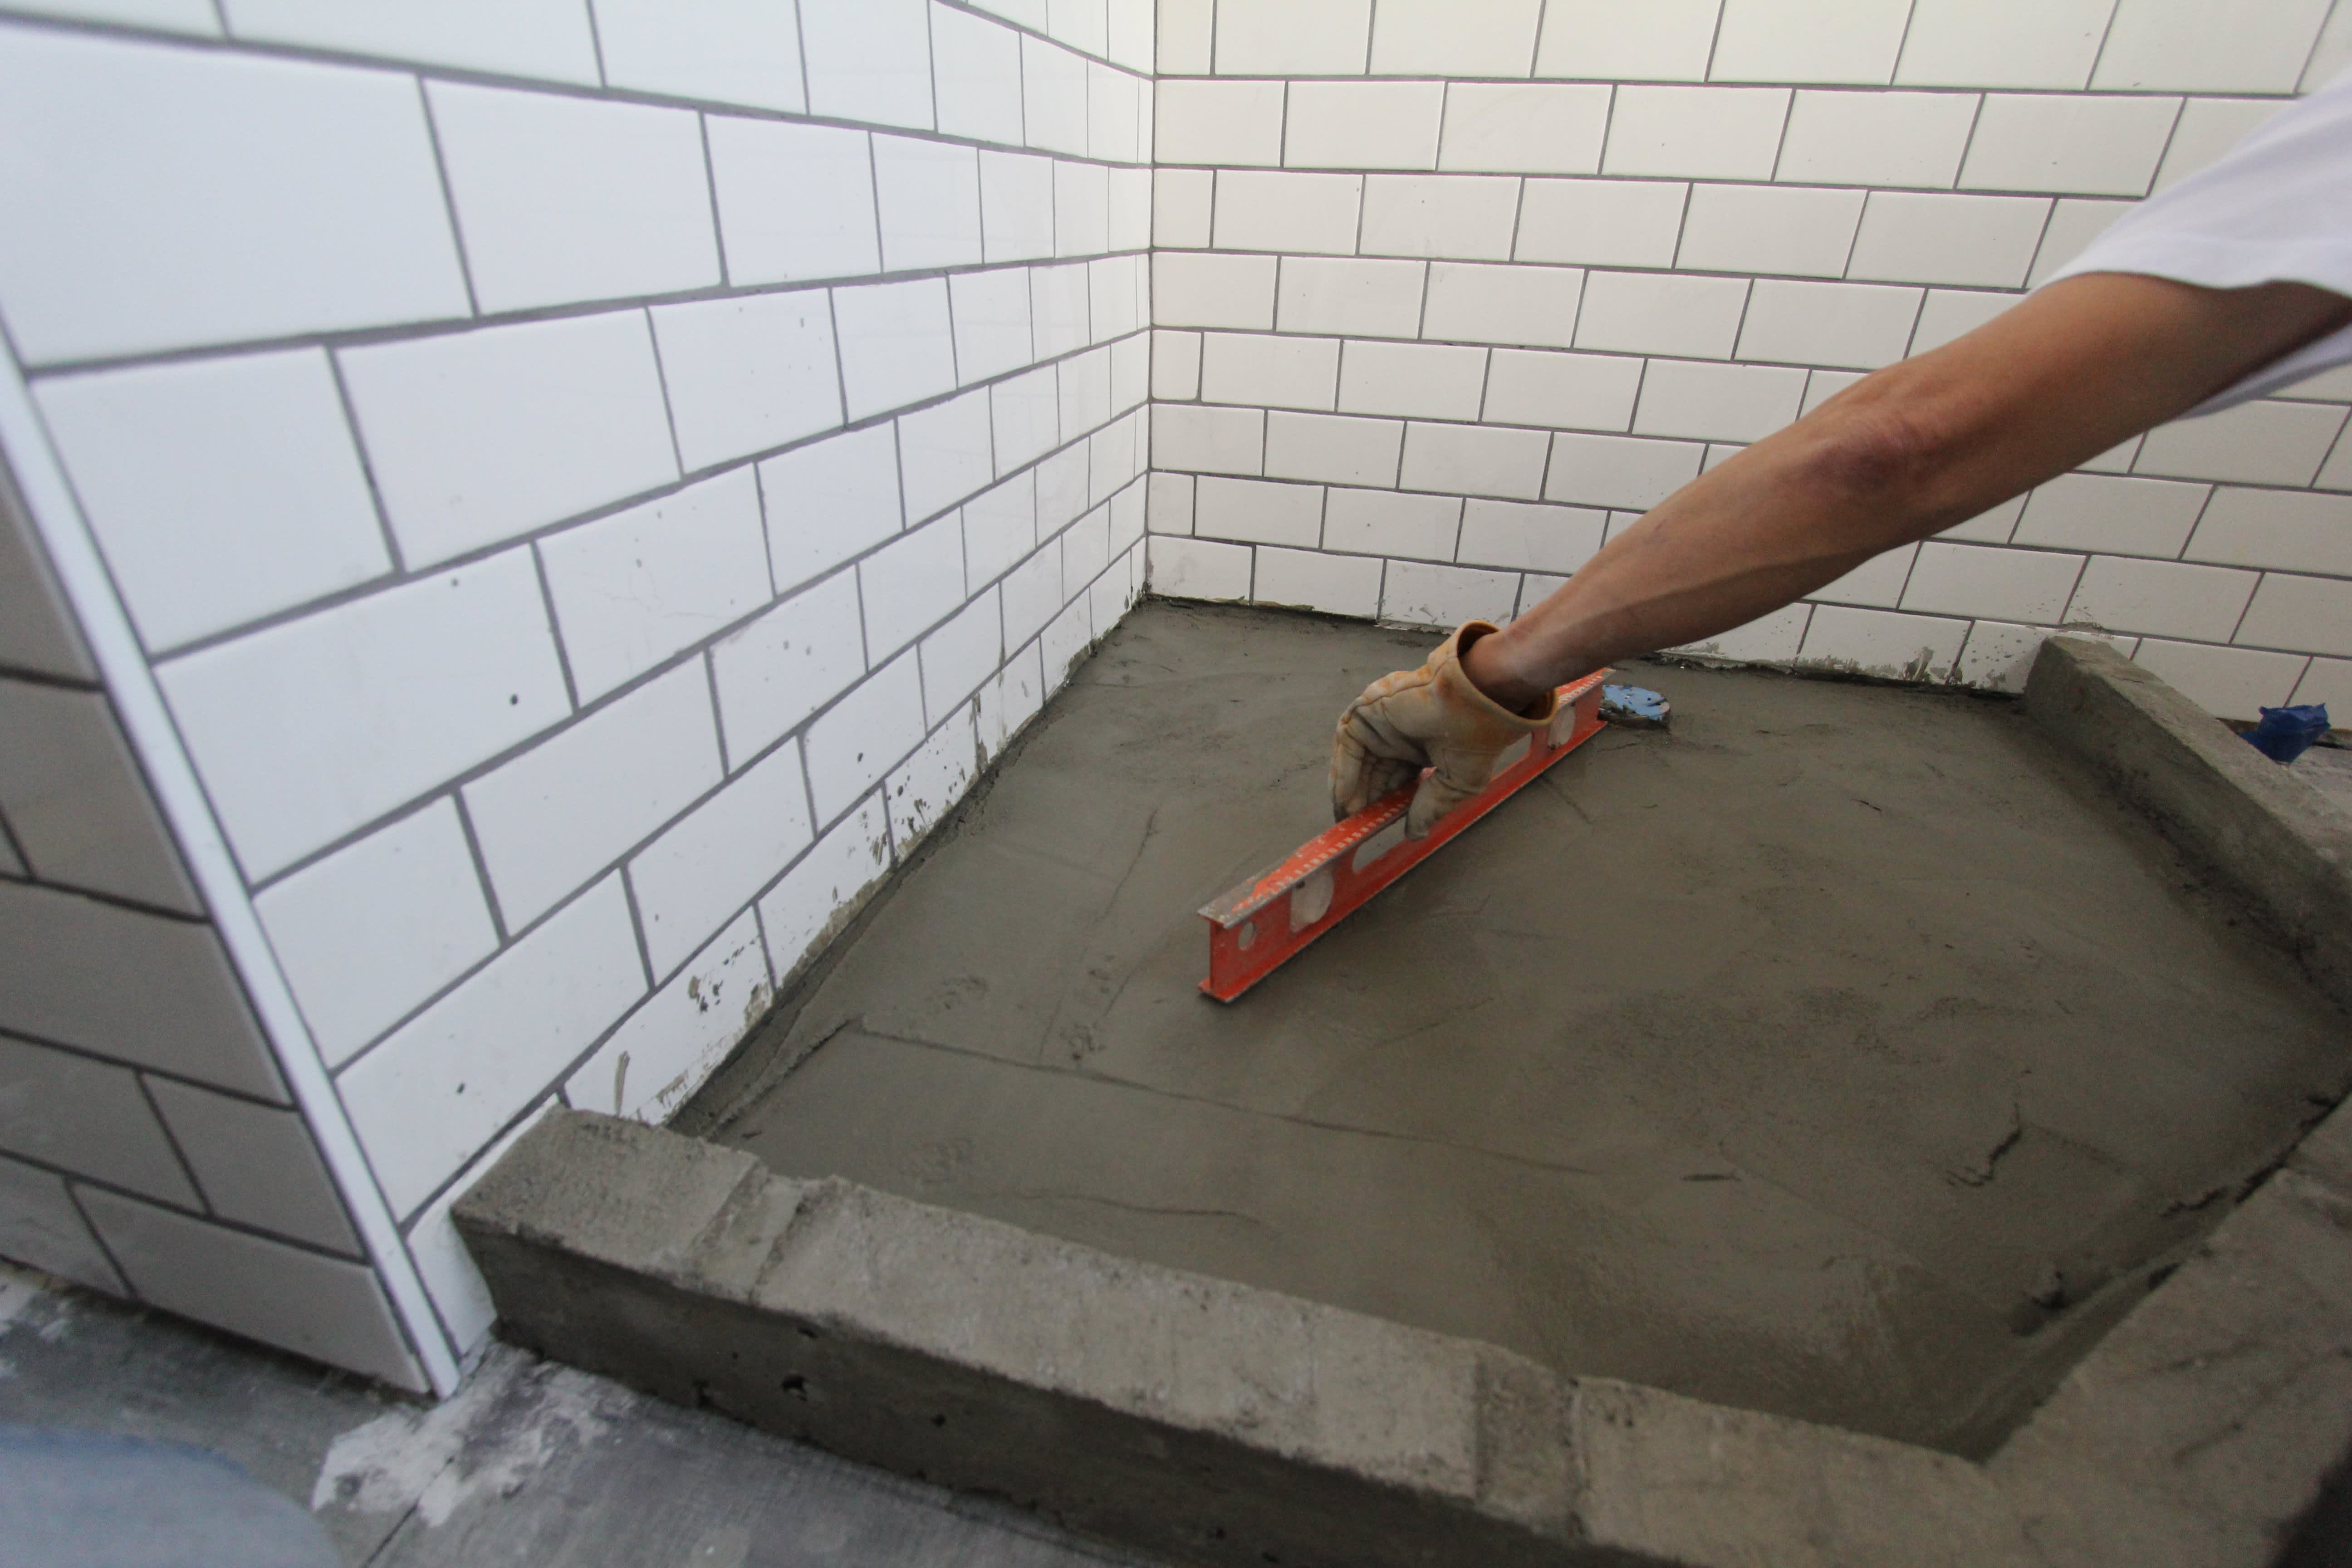 How to Build a Custom Tiled Shower Pan | Apartment Therapy